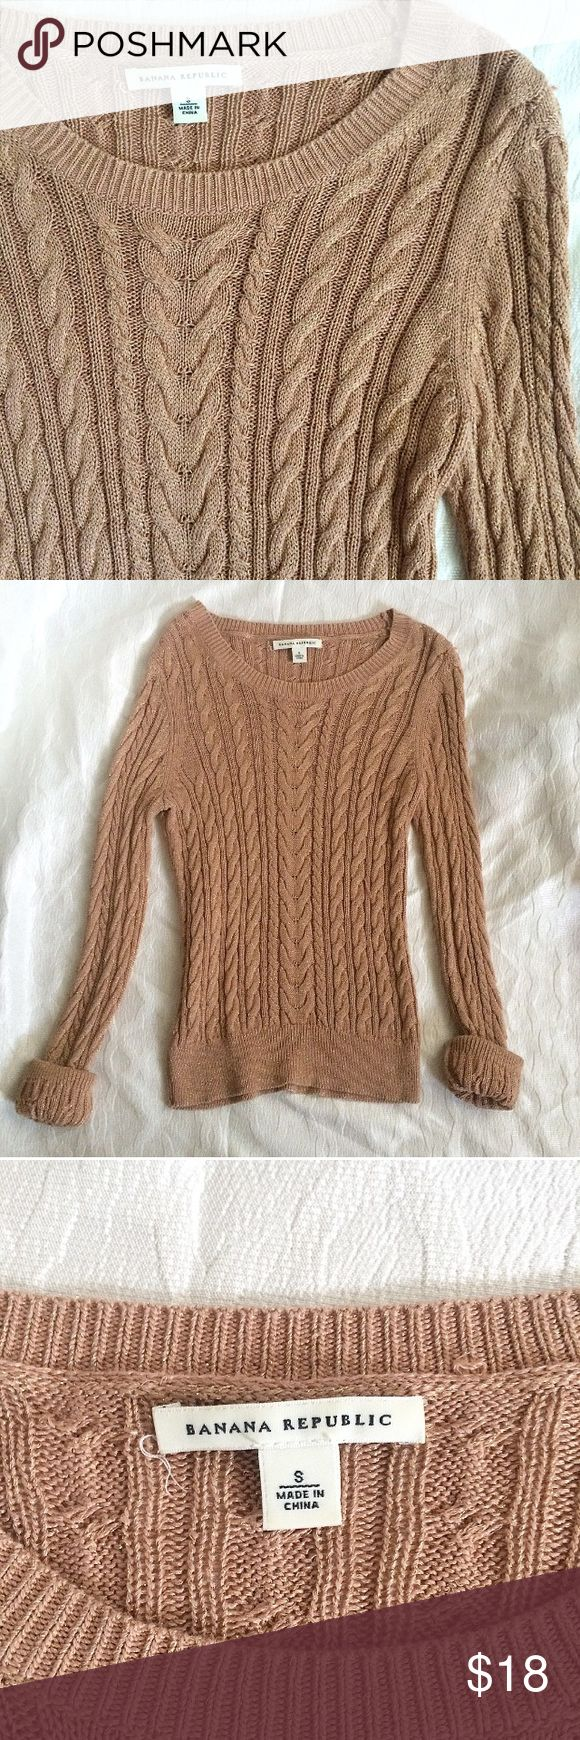 Banana Republic bronze gold sweater. This is a size small, only worn twice! Perfect for work or paired with jeans for a more casual look.  It has some metallic threads intertwined, so it shimmers a tad. It is a classy and one of a kind sweater. Banana Republic Sweaters Crew & Scoop Necks